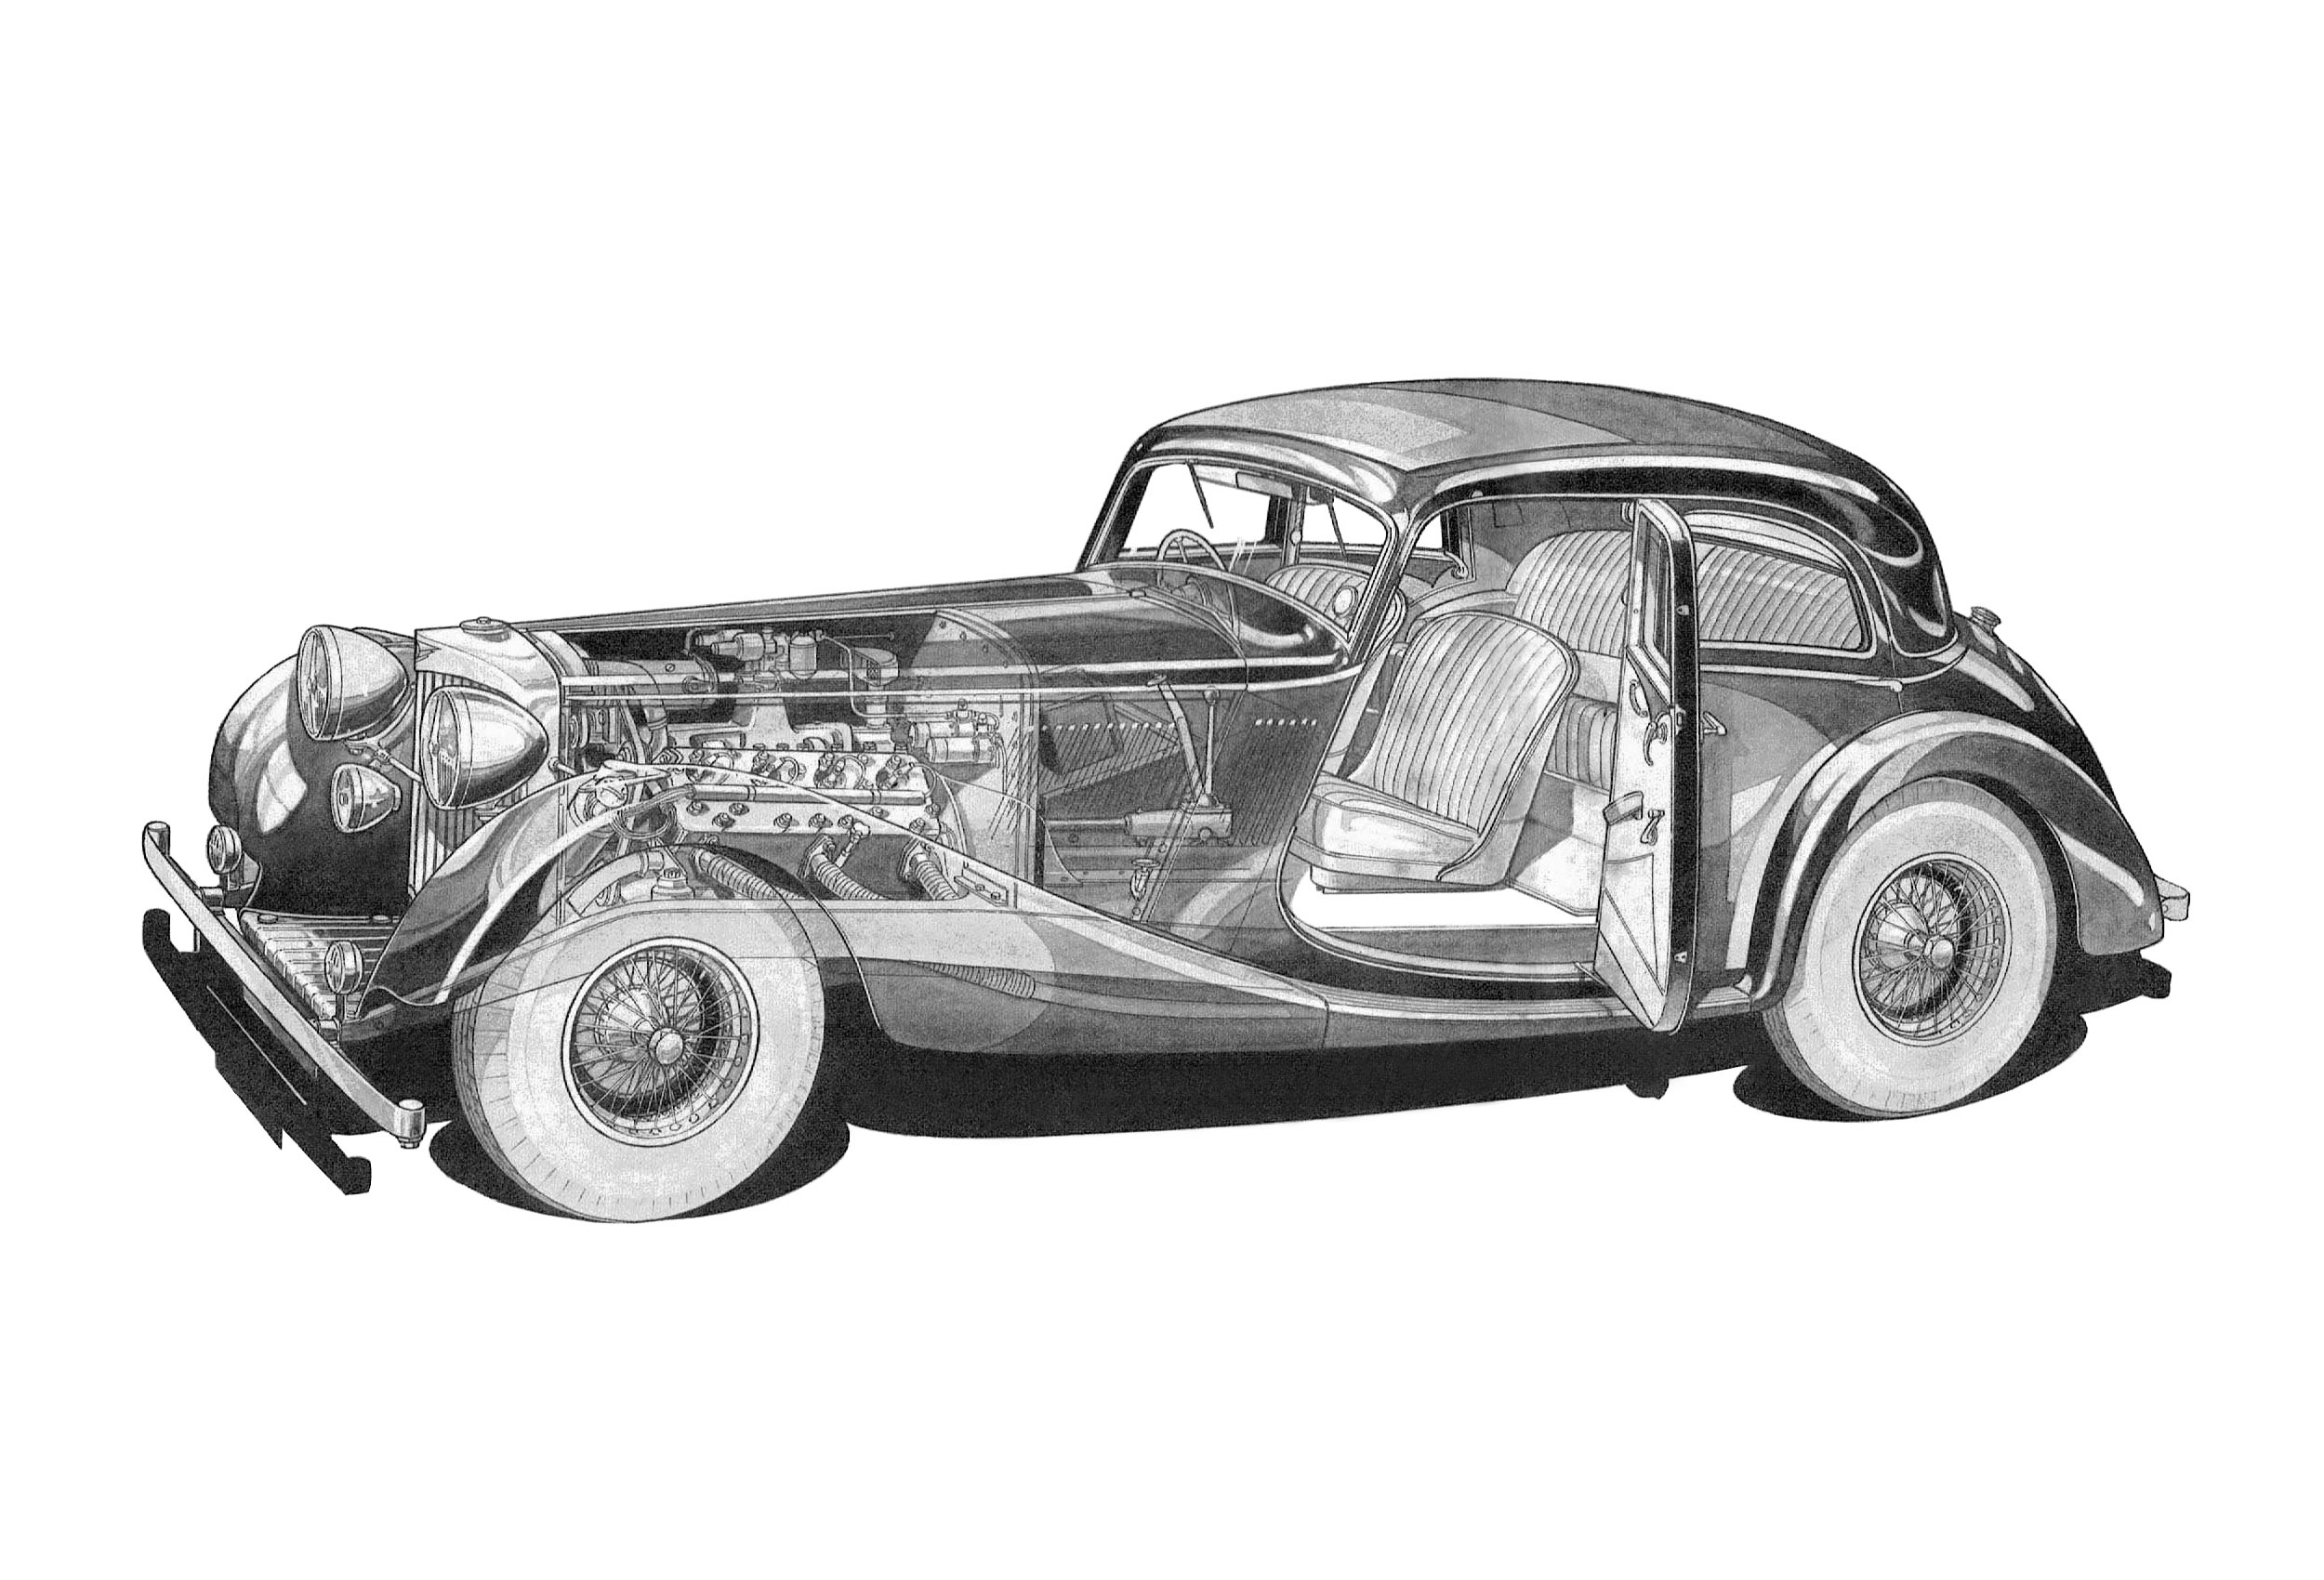 Jensen S-Type cutaway drawing